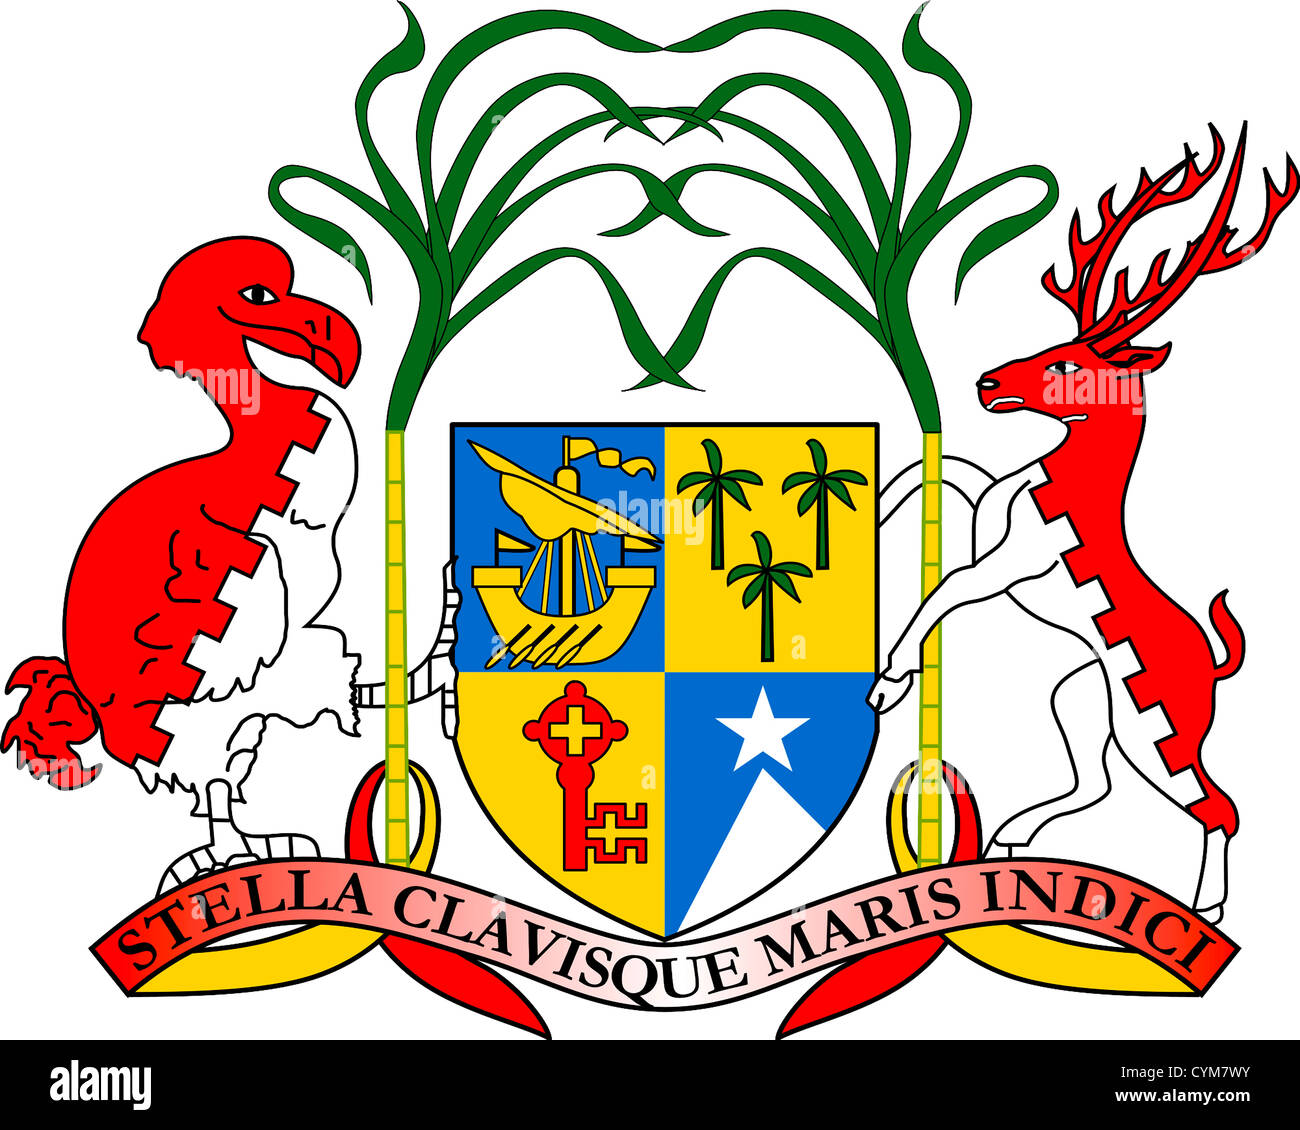 Coat of arms of the Republic of Mauritius. - Stock Image